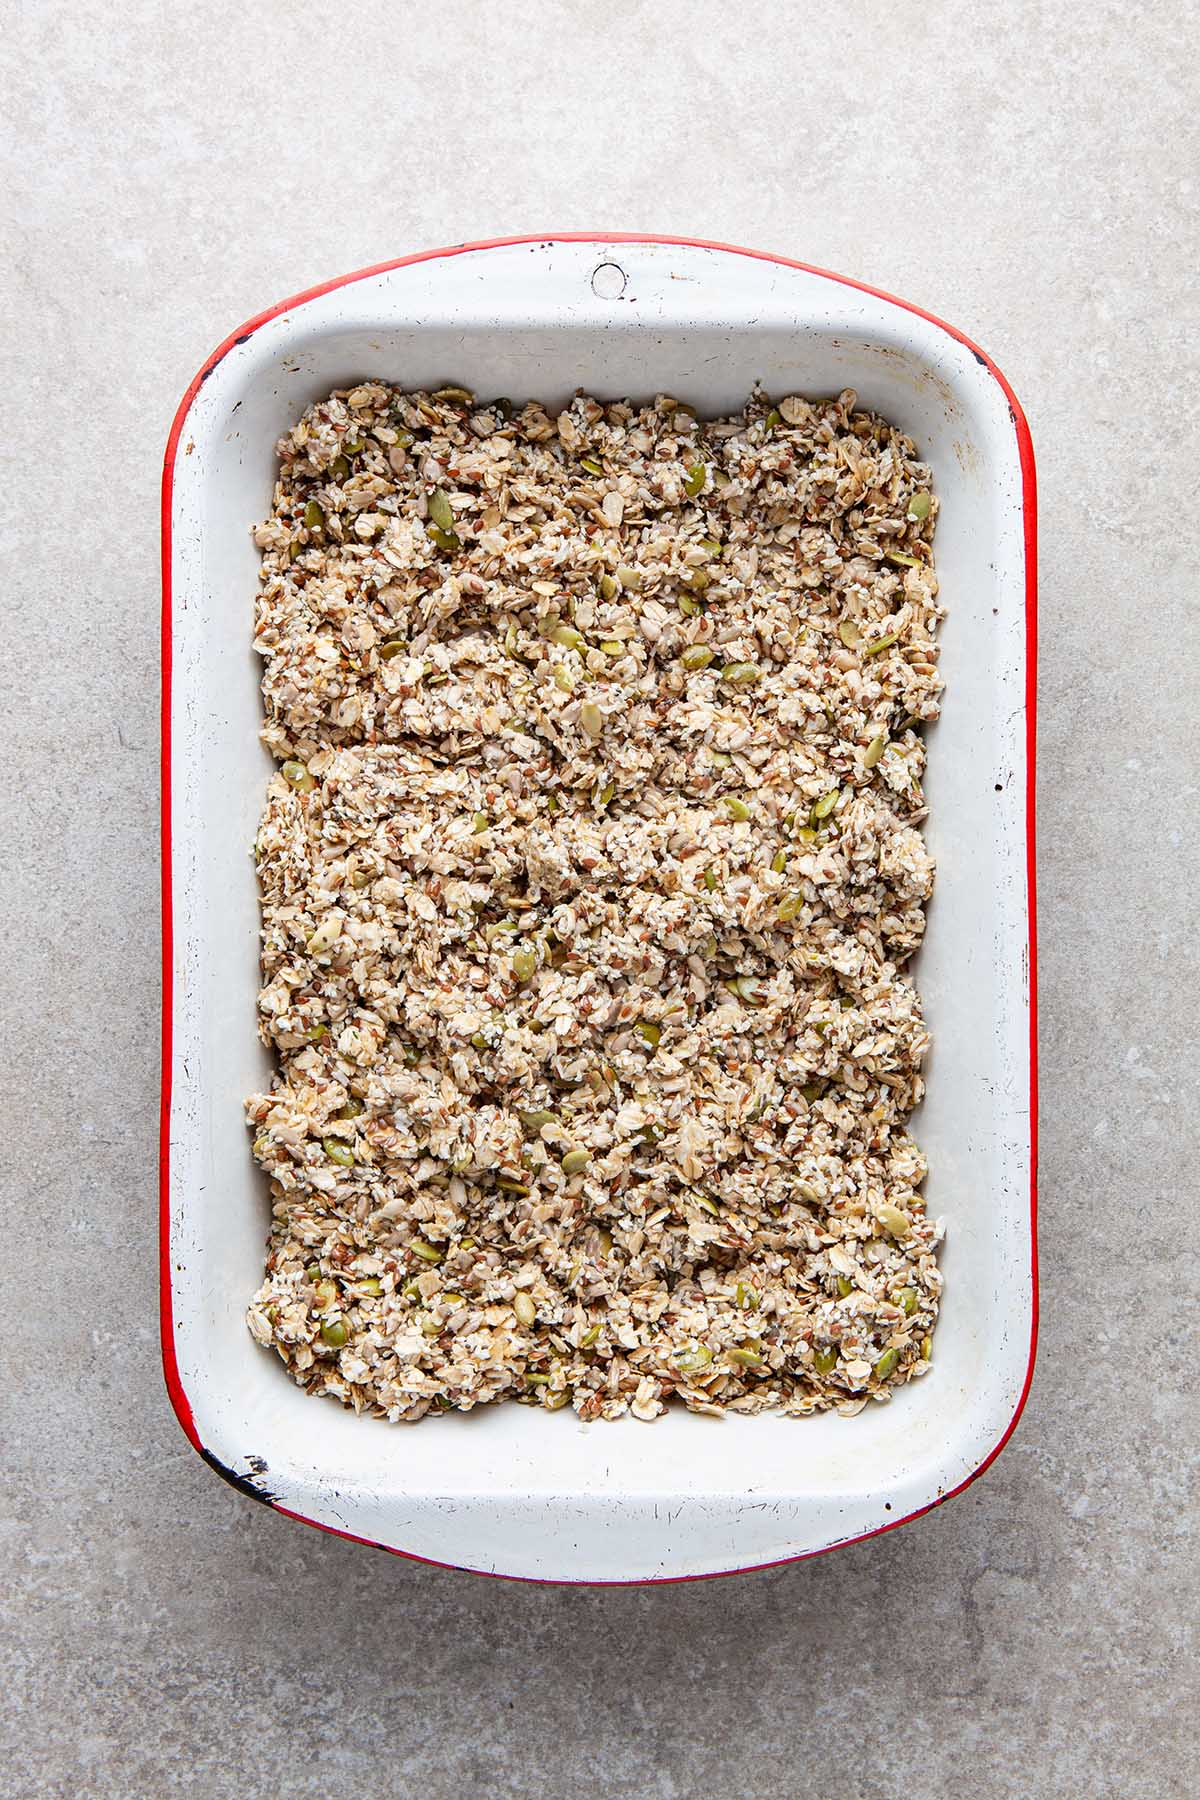 Unbaked granola in a deep white enamel baking dish with red trim.